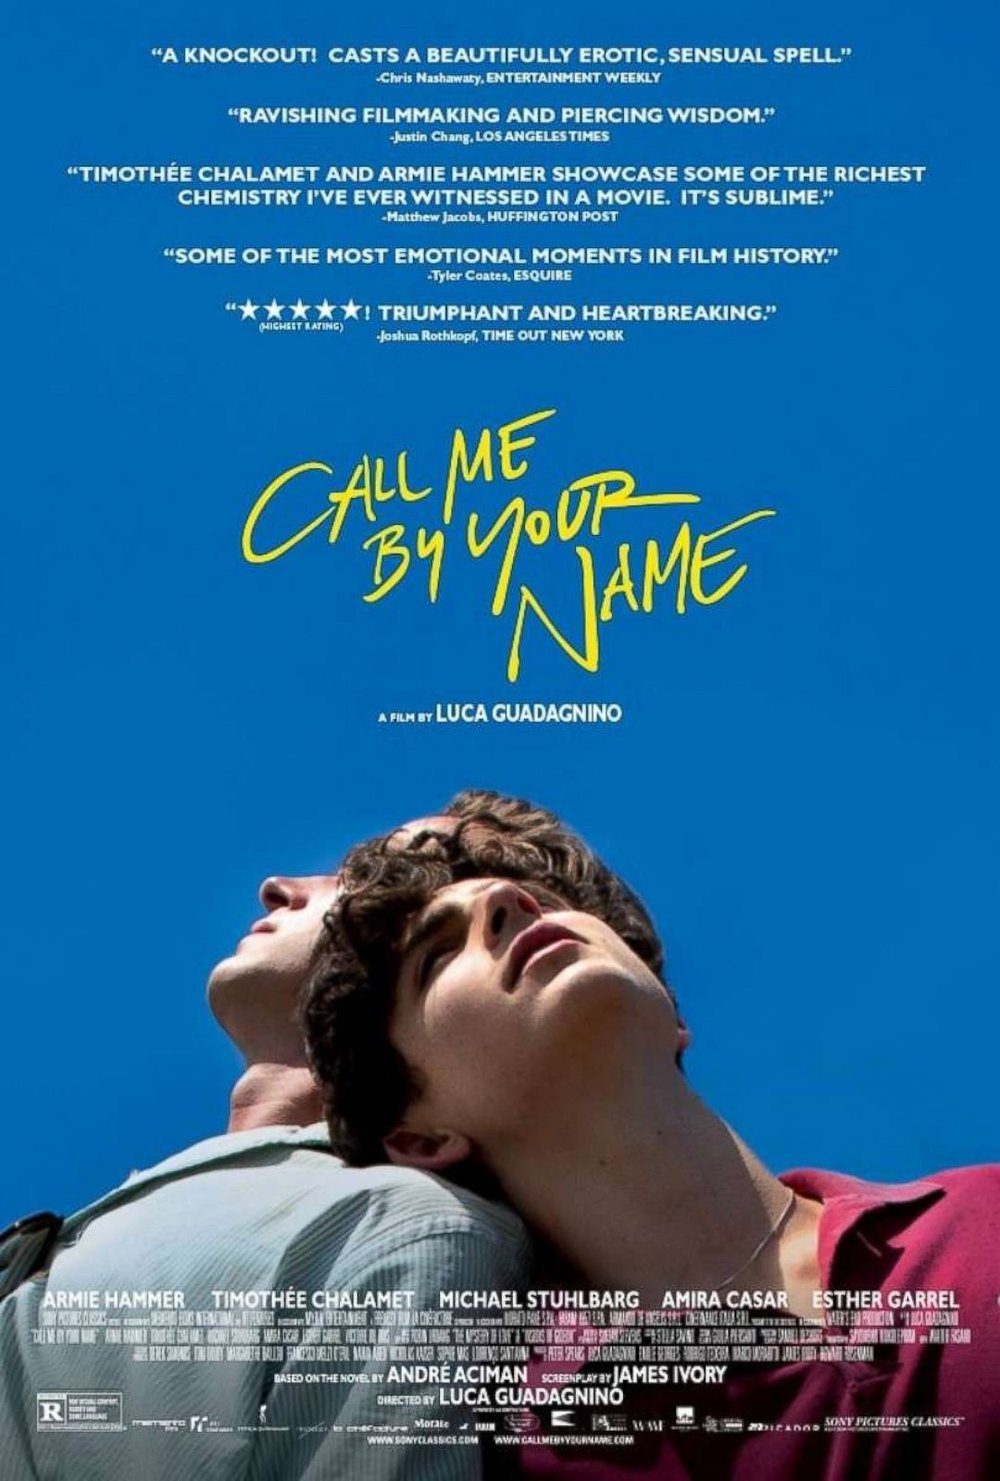 Call Me by Your Name   (2017) dir. Luca Guadagnino Rated: R image: ©2017  Sony Pictures Classics